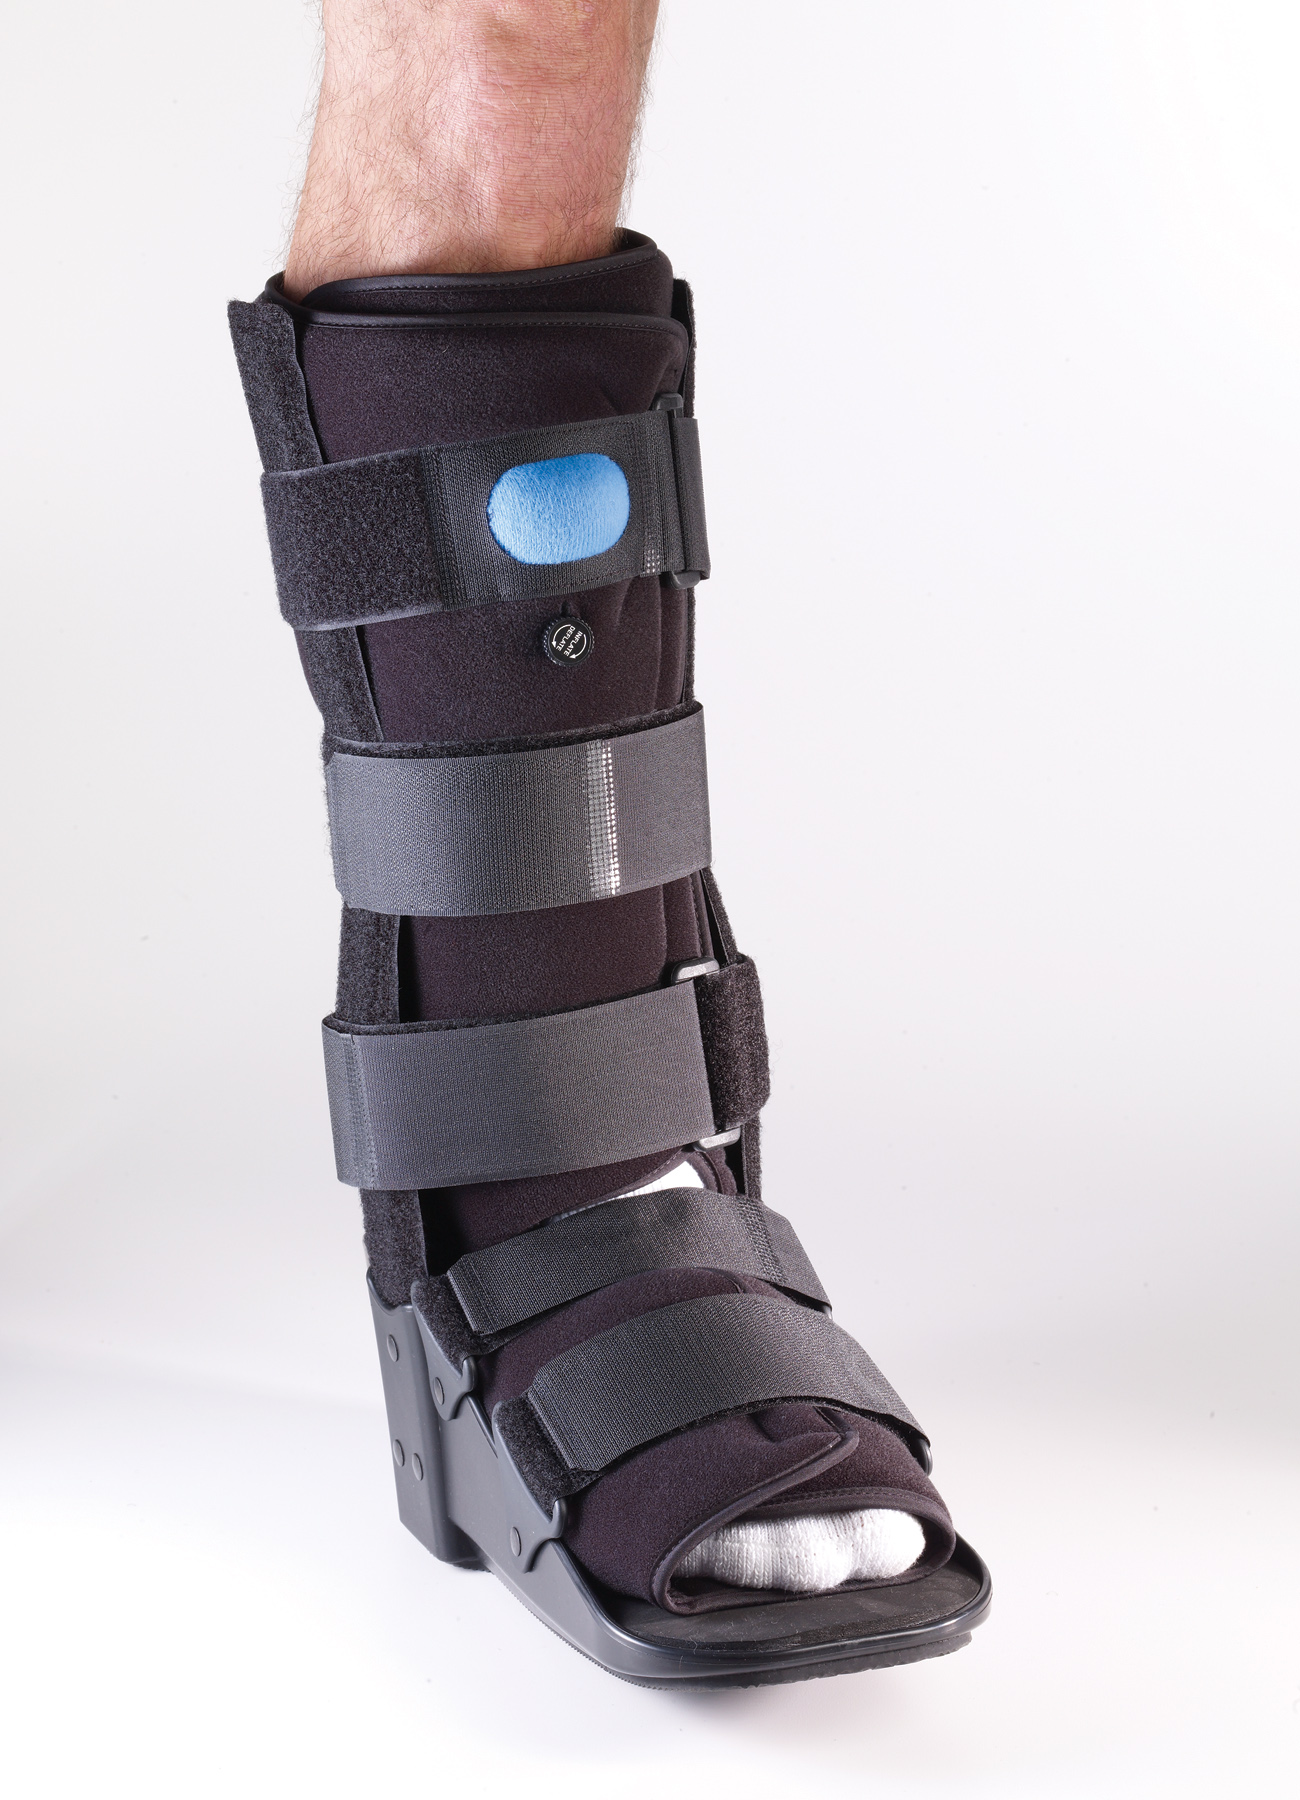 Ankle Immobilizers